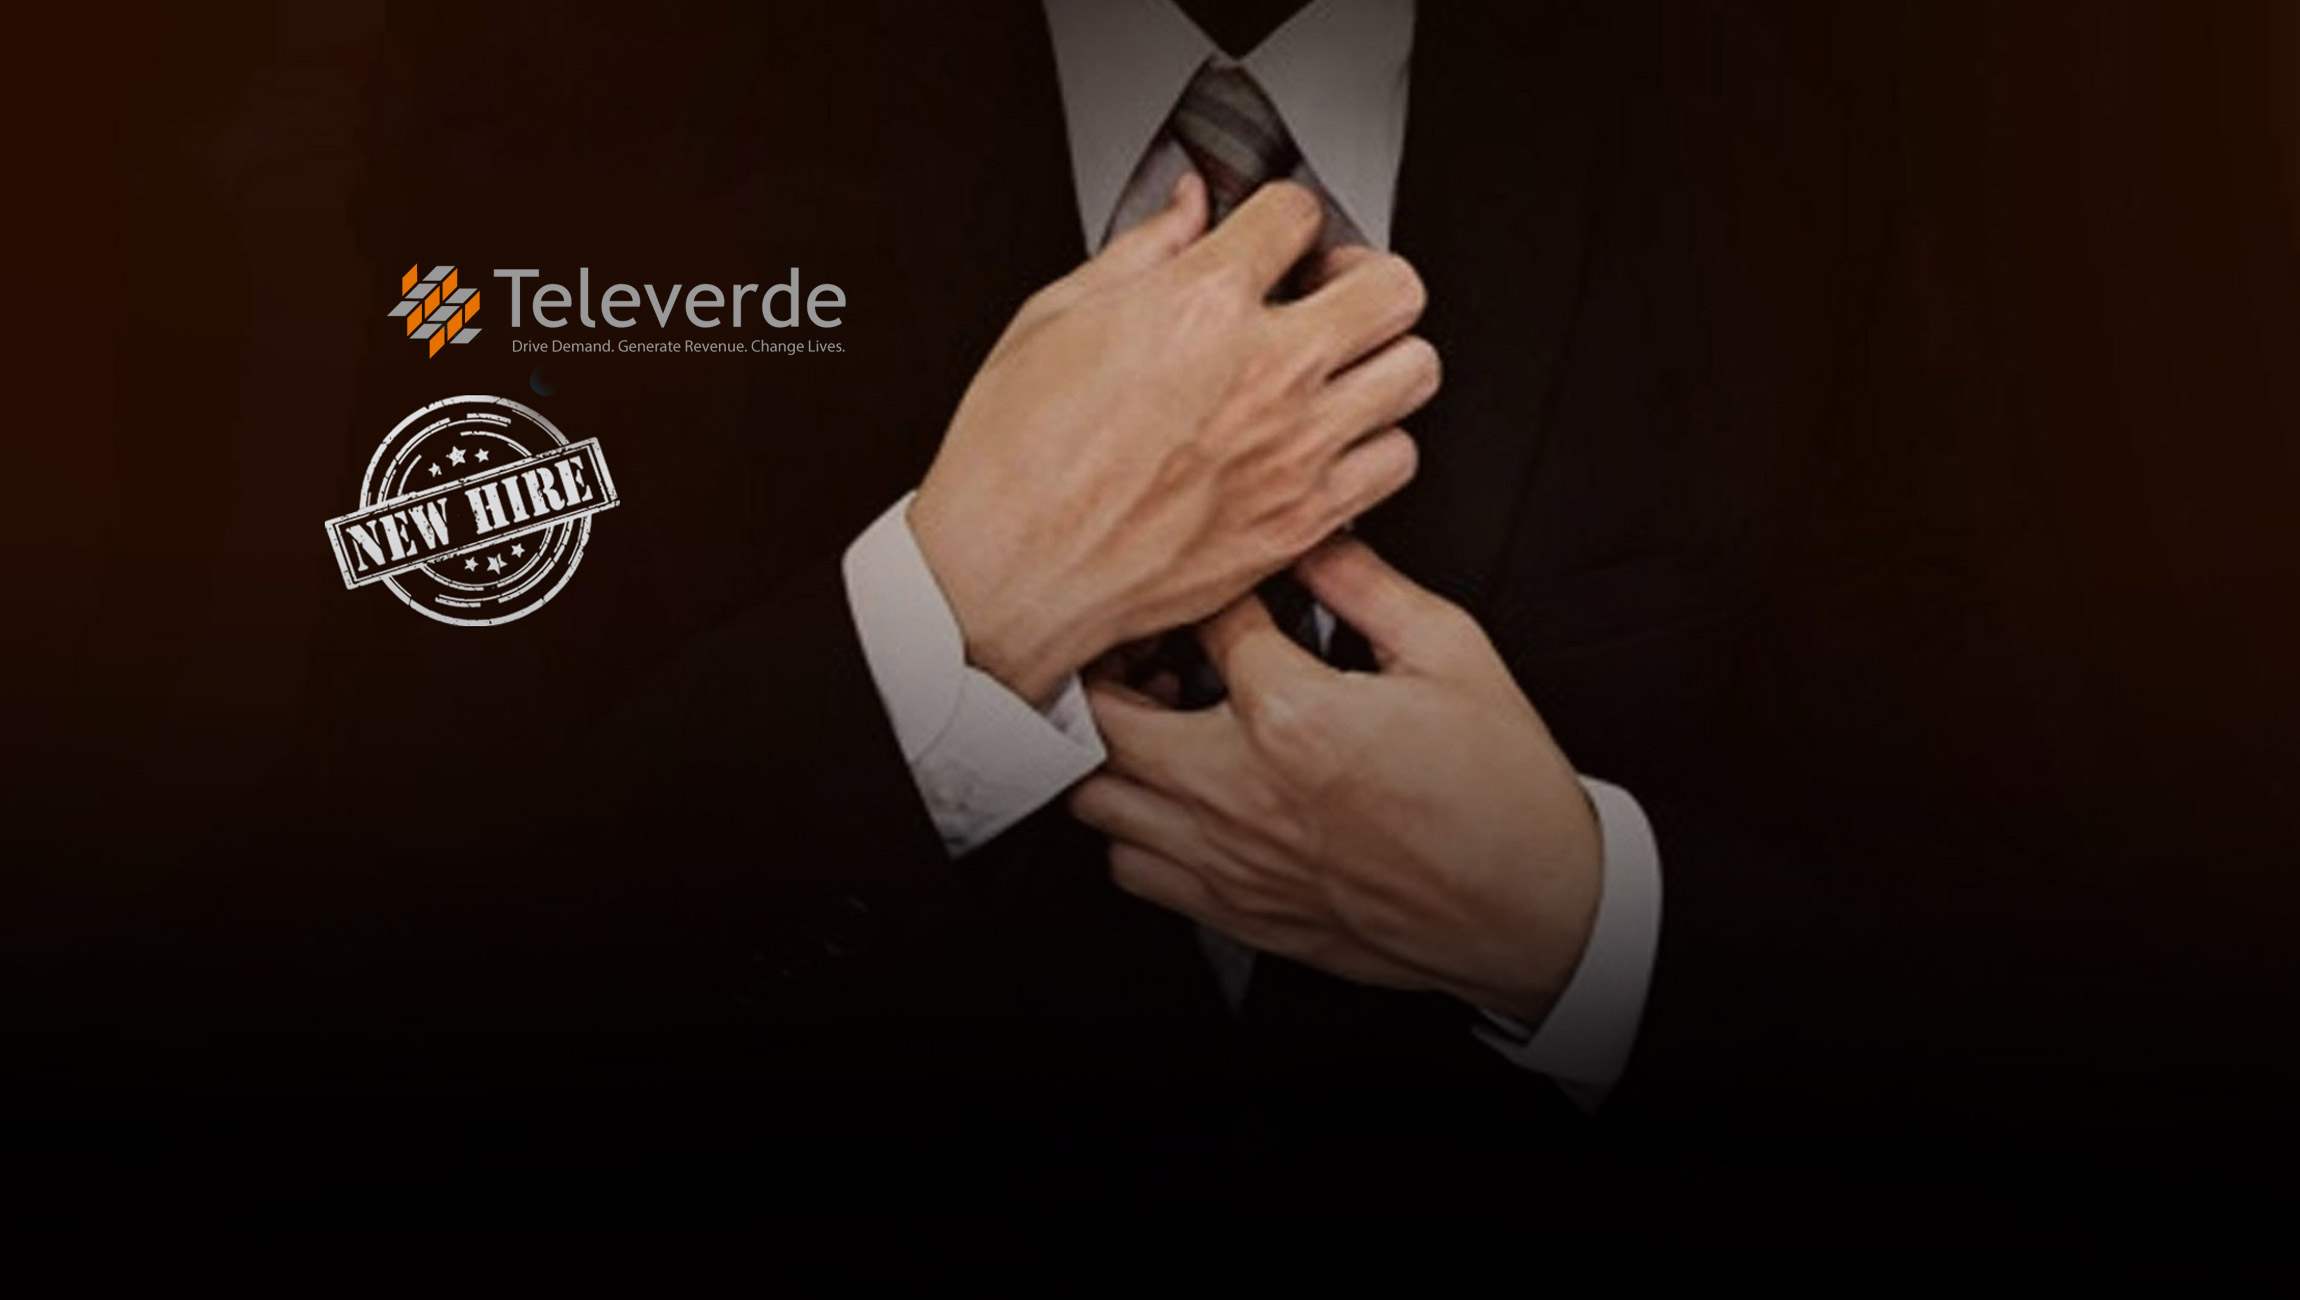 Televerde Appoints Christopher Daniels Global Head of Sales to Accelerate the Company's Growth and Expansion Plans